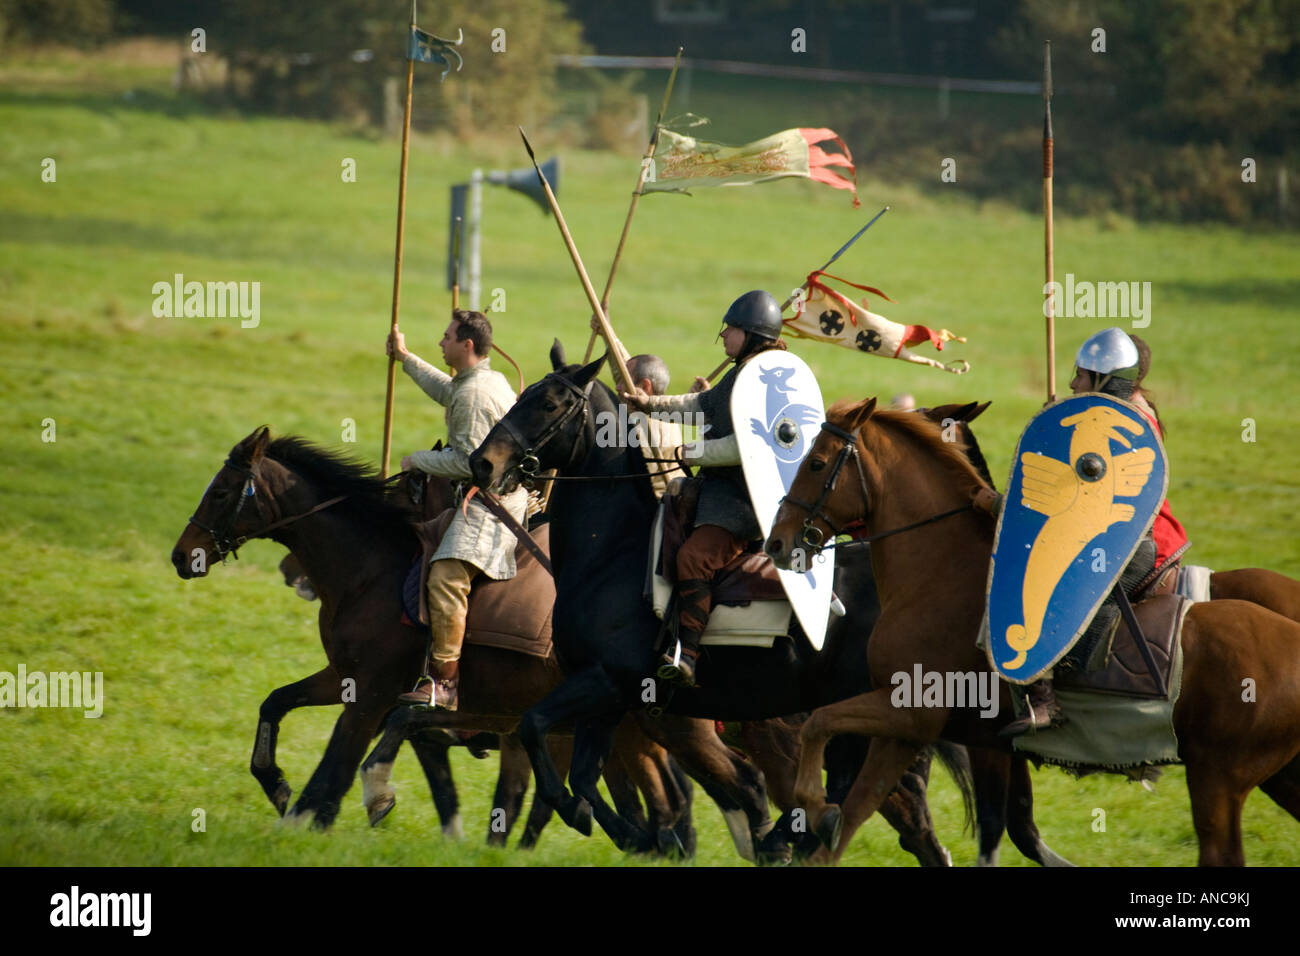 Part of William s cavalry riding at Battle of Hastings re enactment 2007 - Stock Image